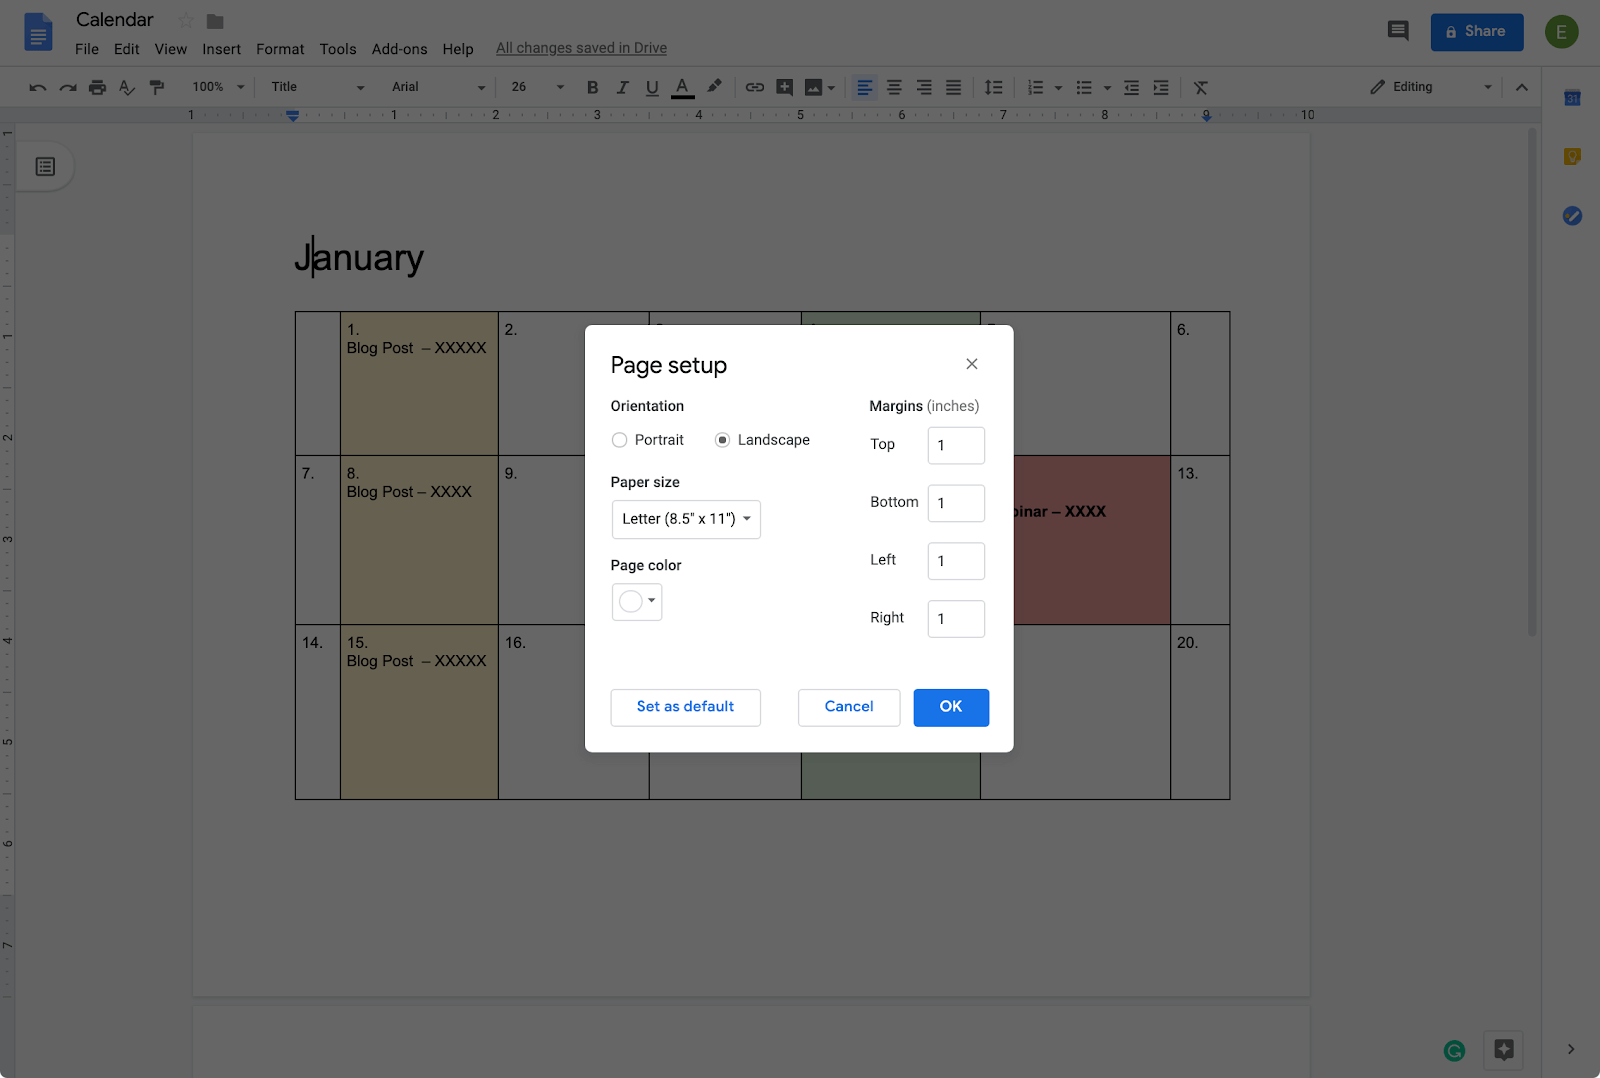 setting up orientation of calendar in google docs